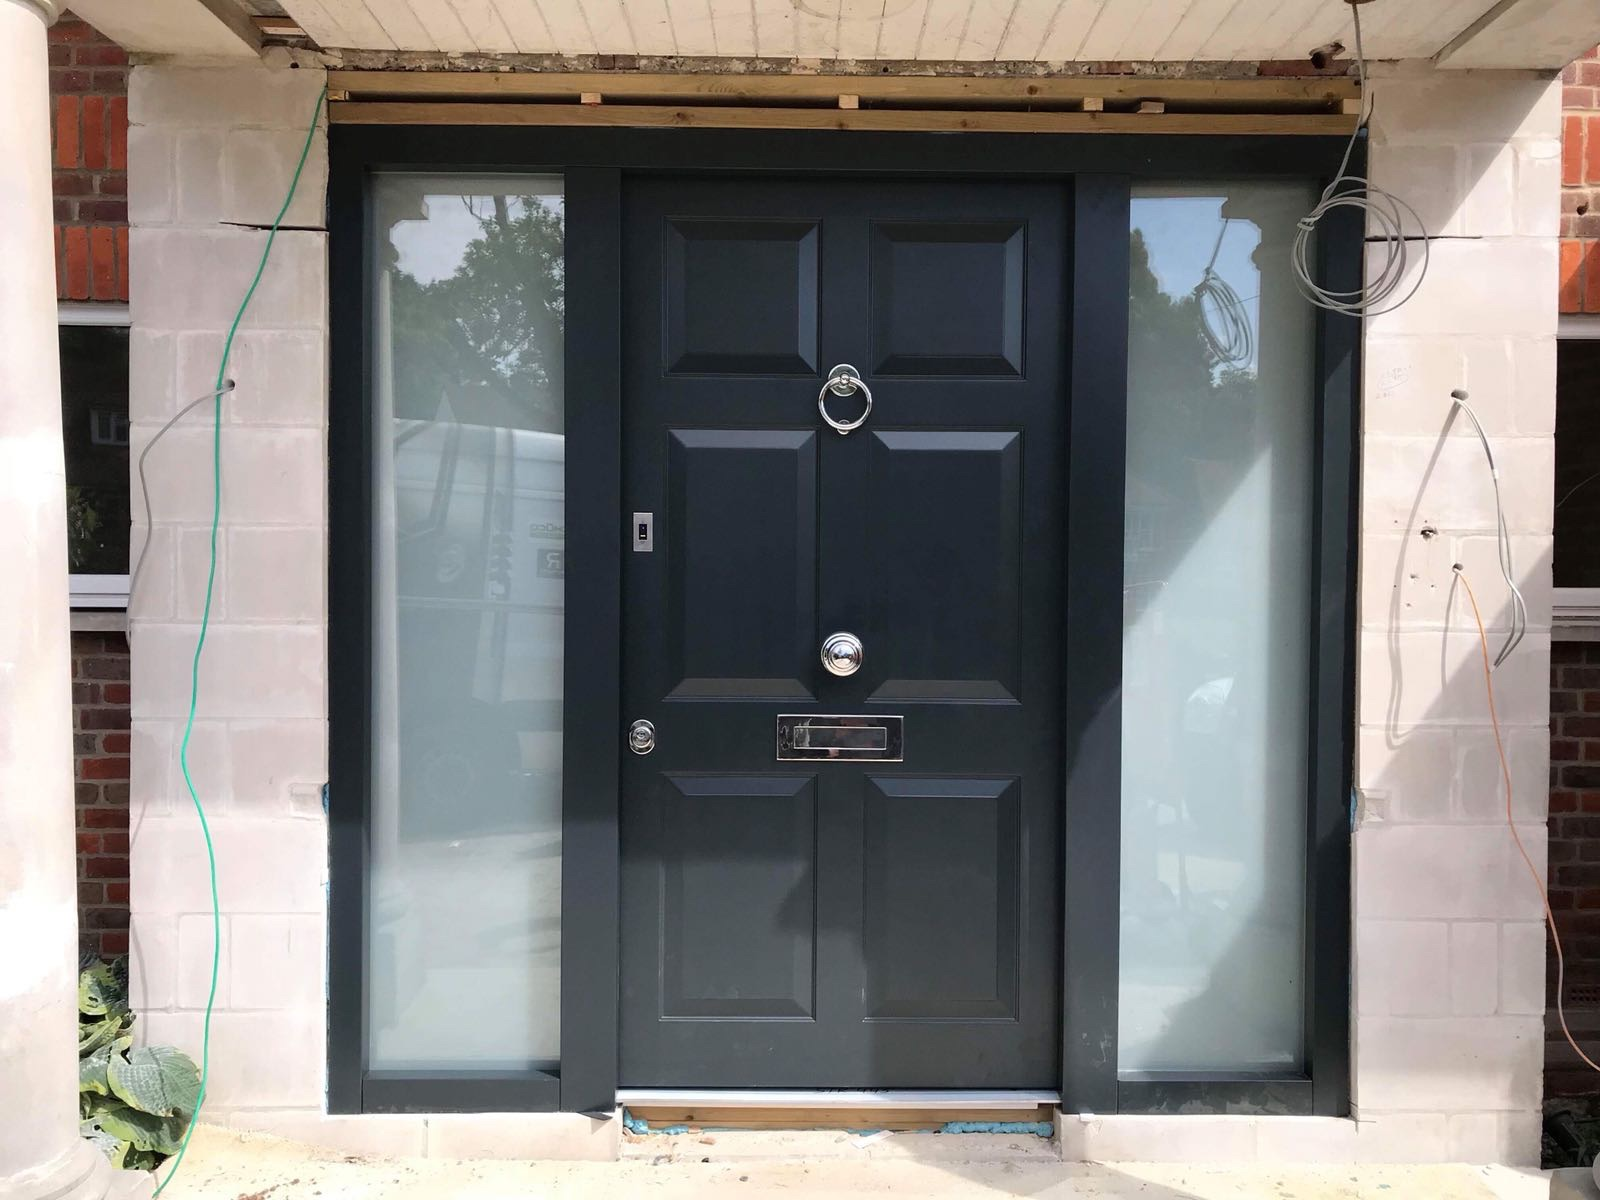 Fort Security Contemporary Door With Fingerprint Reader And 2 Large Side Glazed Panels